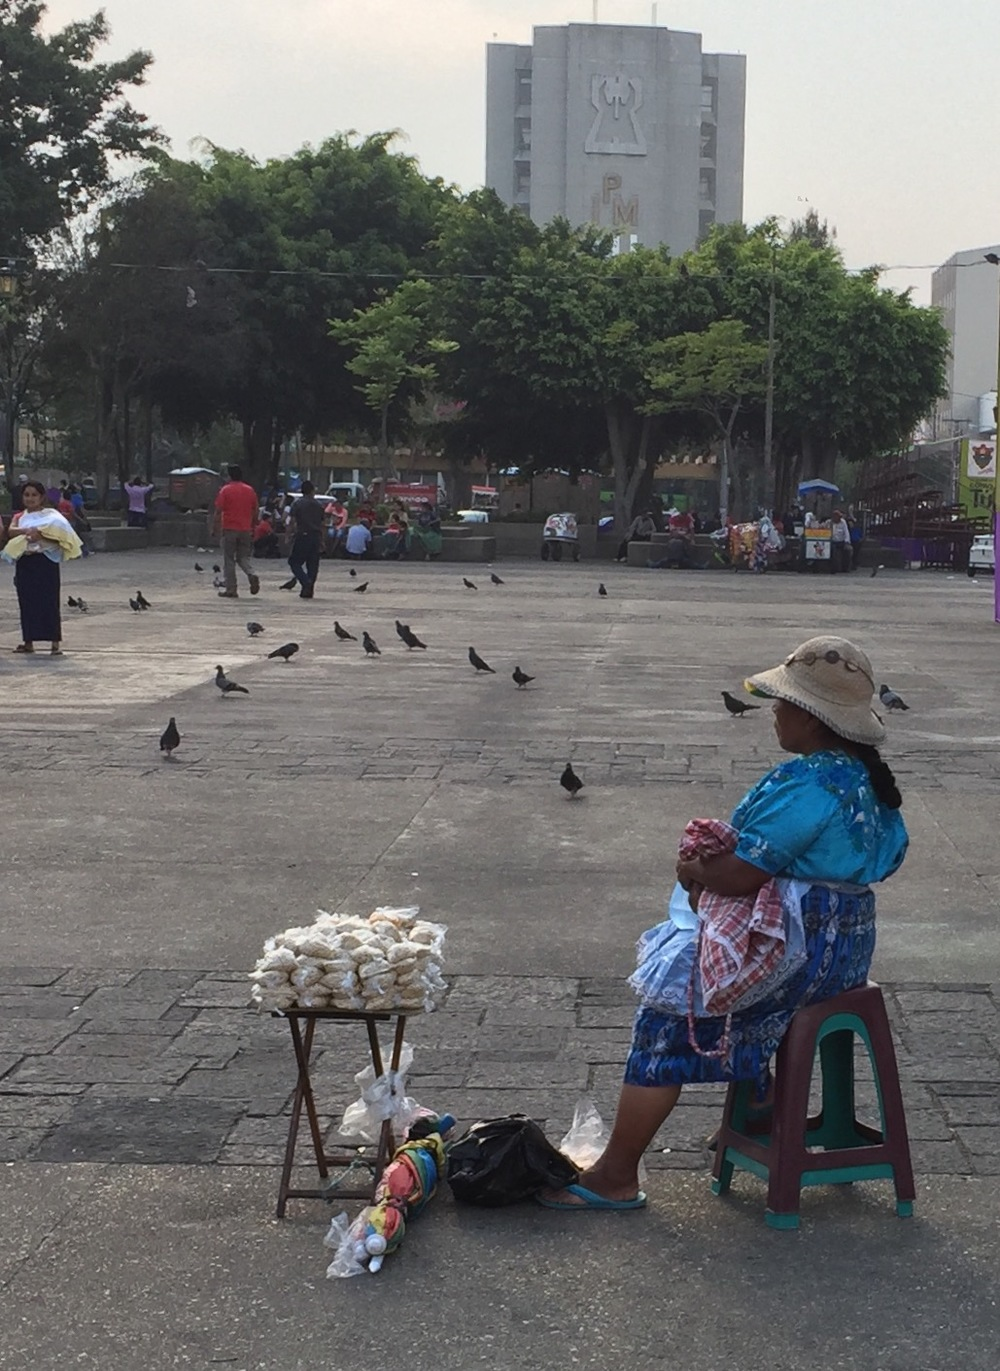 Street vendor in Central Plaza, Guatemala City.